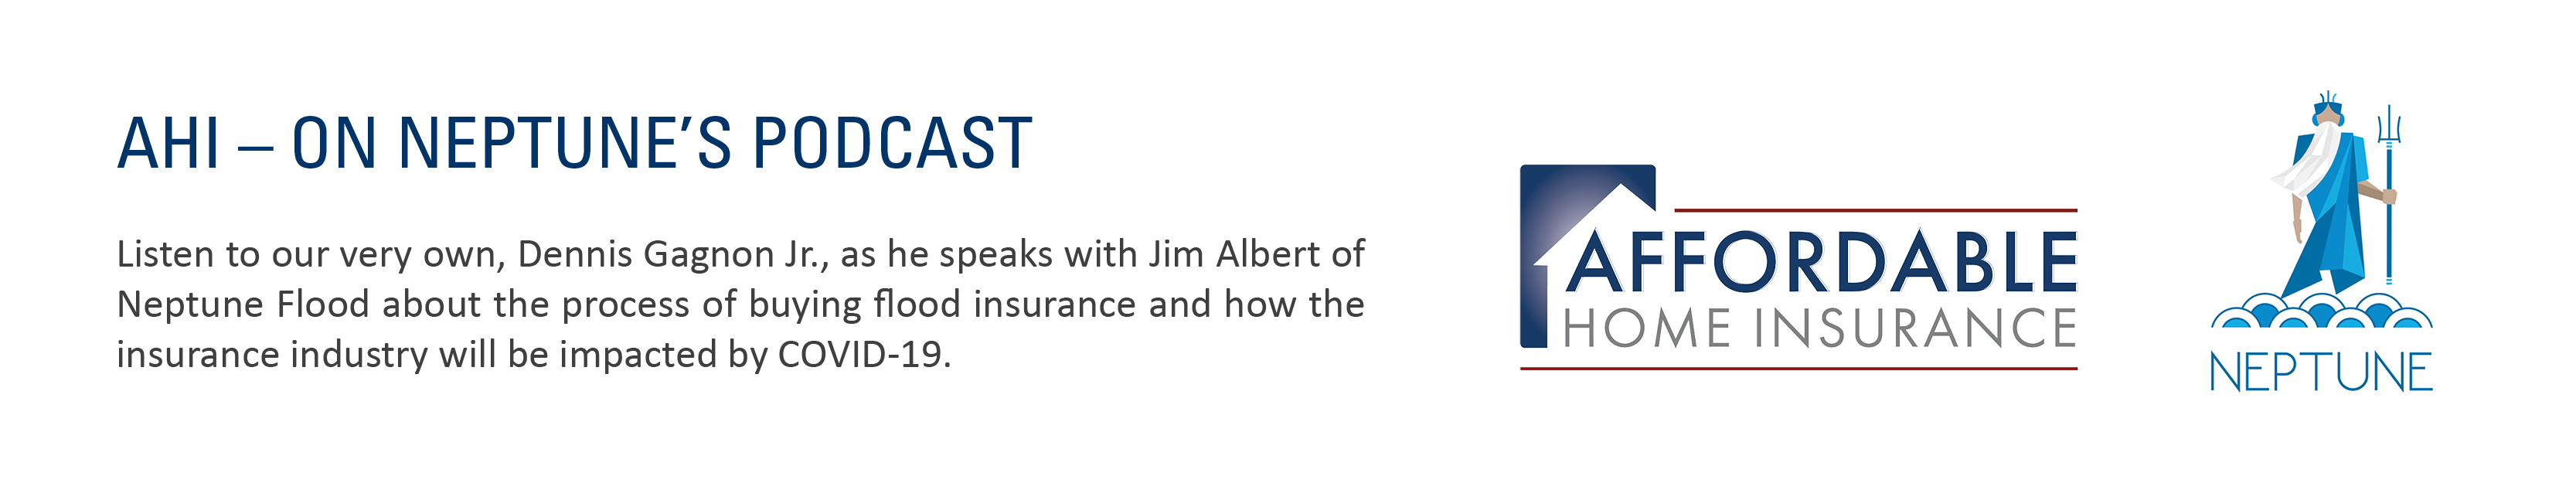 AHI on Neptune's Podcast - Listen in to our very own, Dennis Gagnon Jr. as he speaks with Jim Alber of Neptune Flood about the process of buying flood insurance and the effect Covid-19 will have on the industry